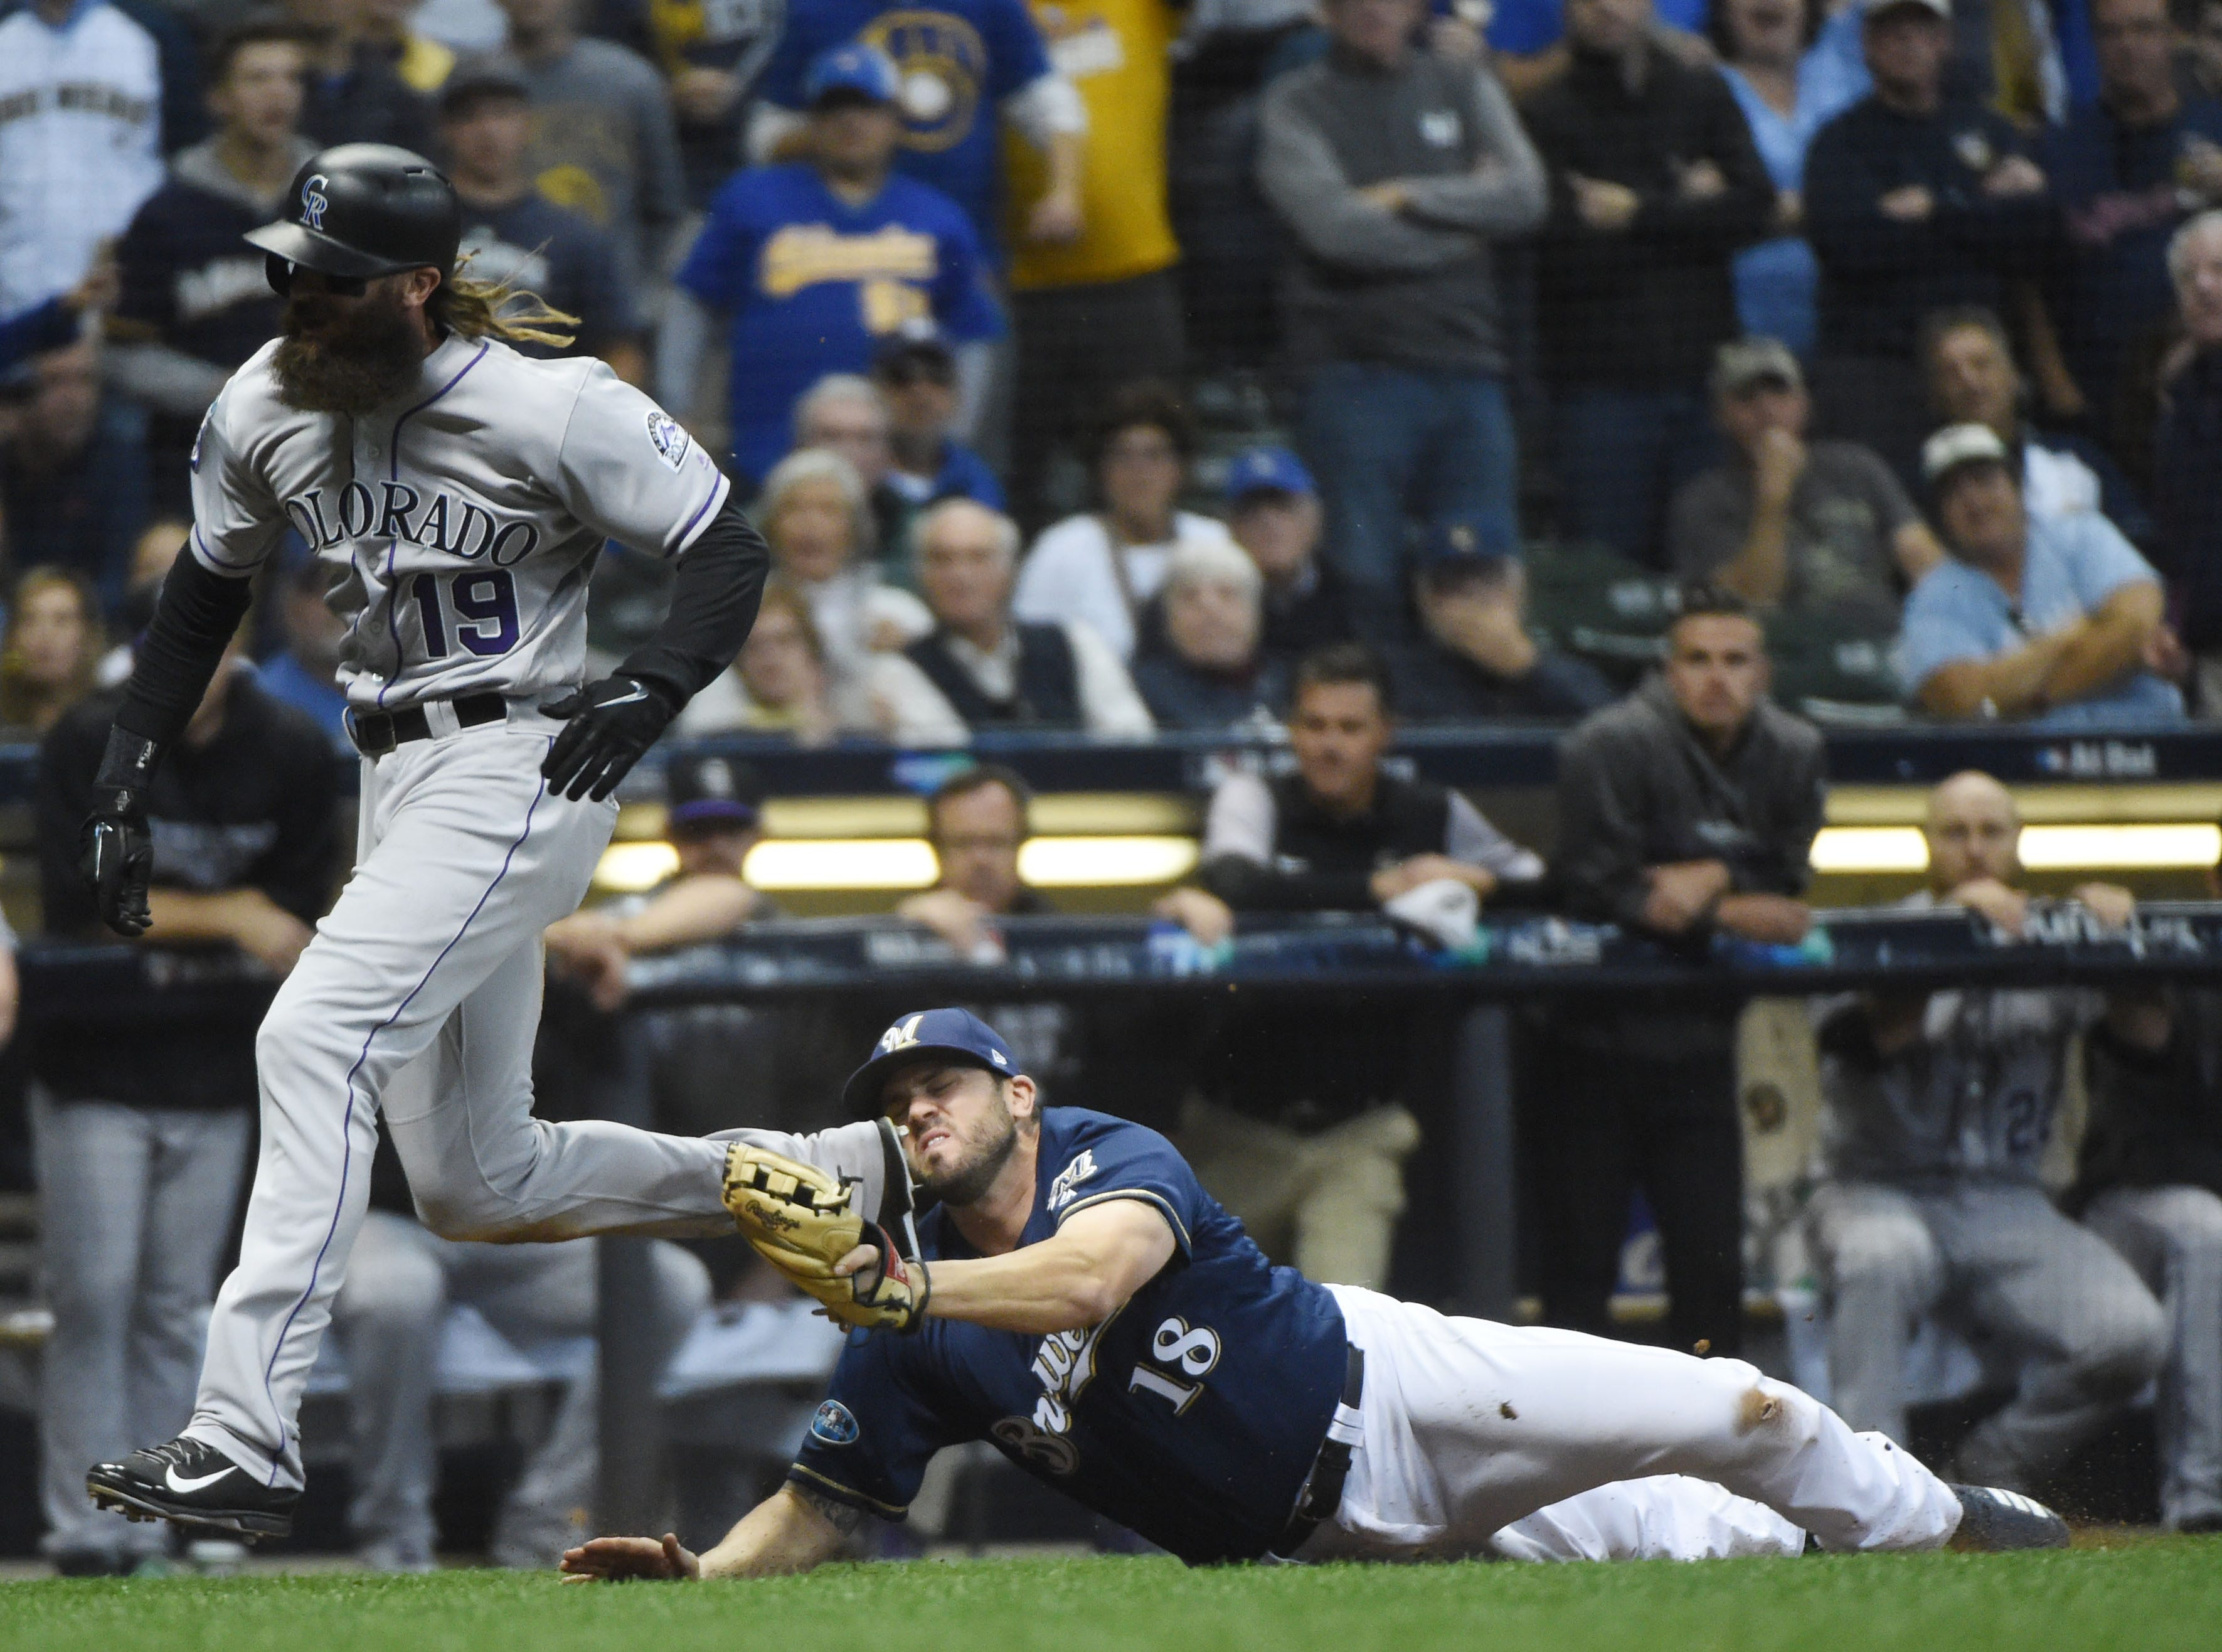 NLDS Game 1: Colorado's Charlie Blackmon is tagged out by Brewers third baseman Mike Moustakas in the ninth inning.